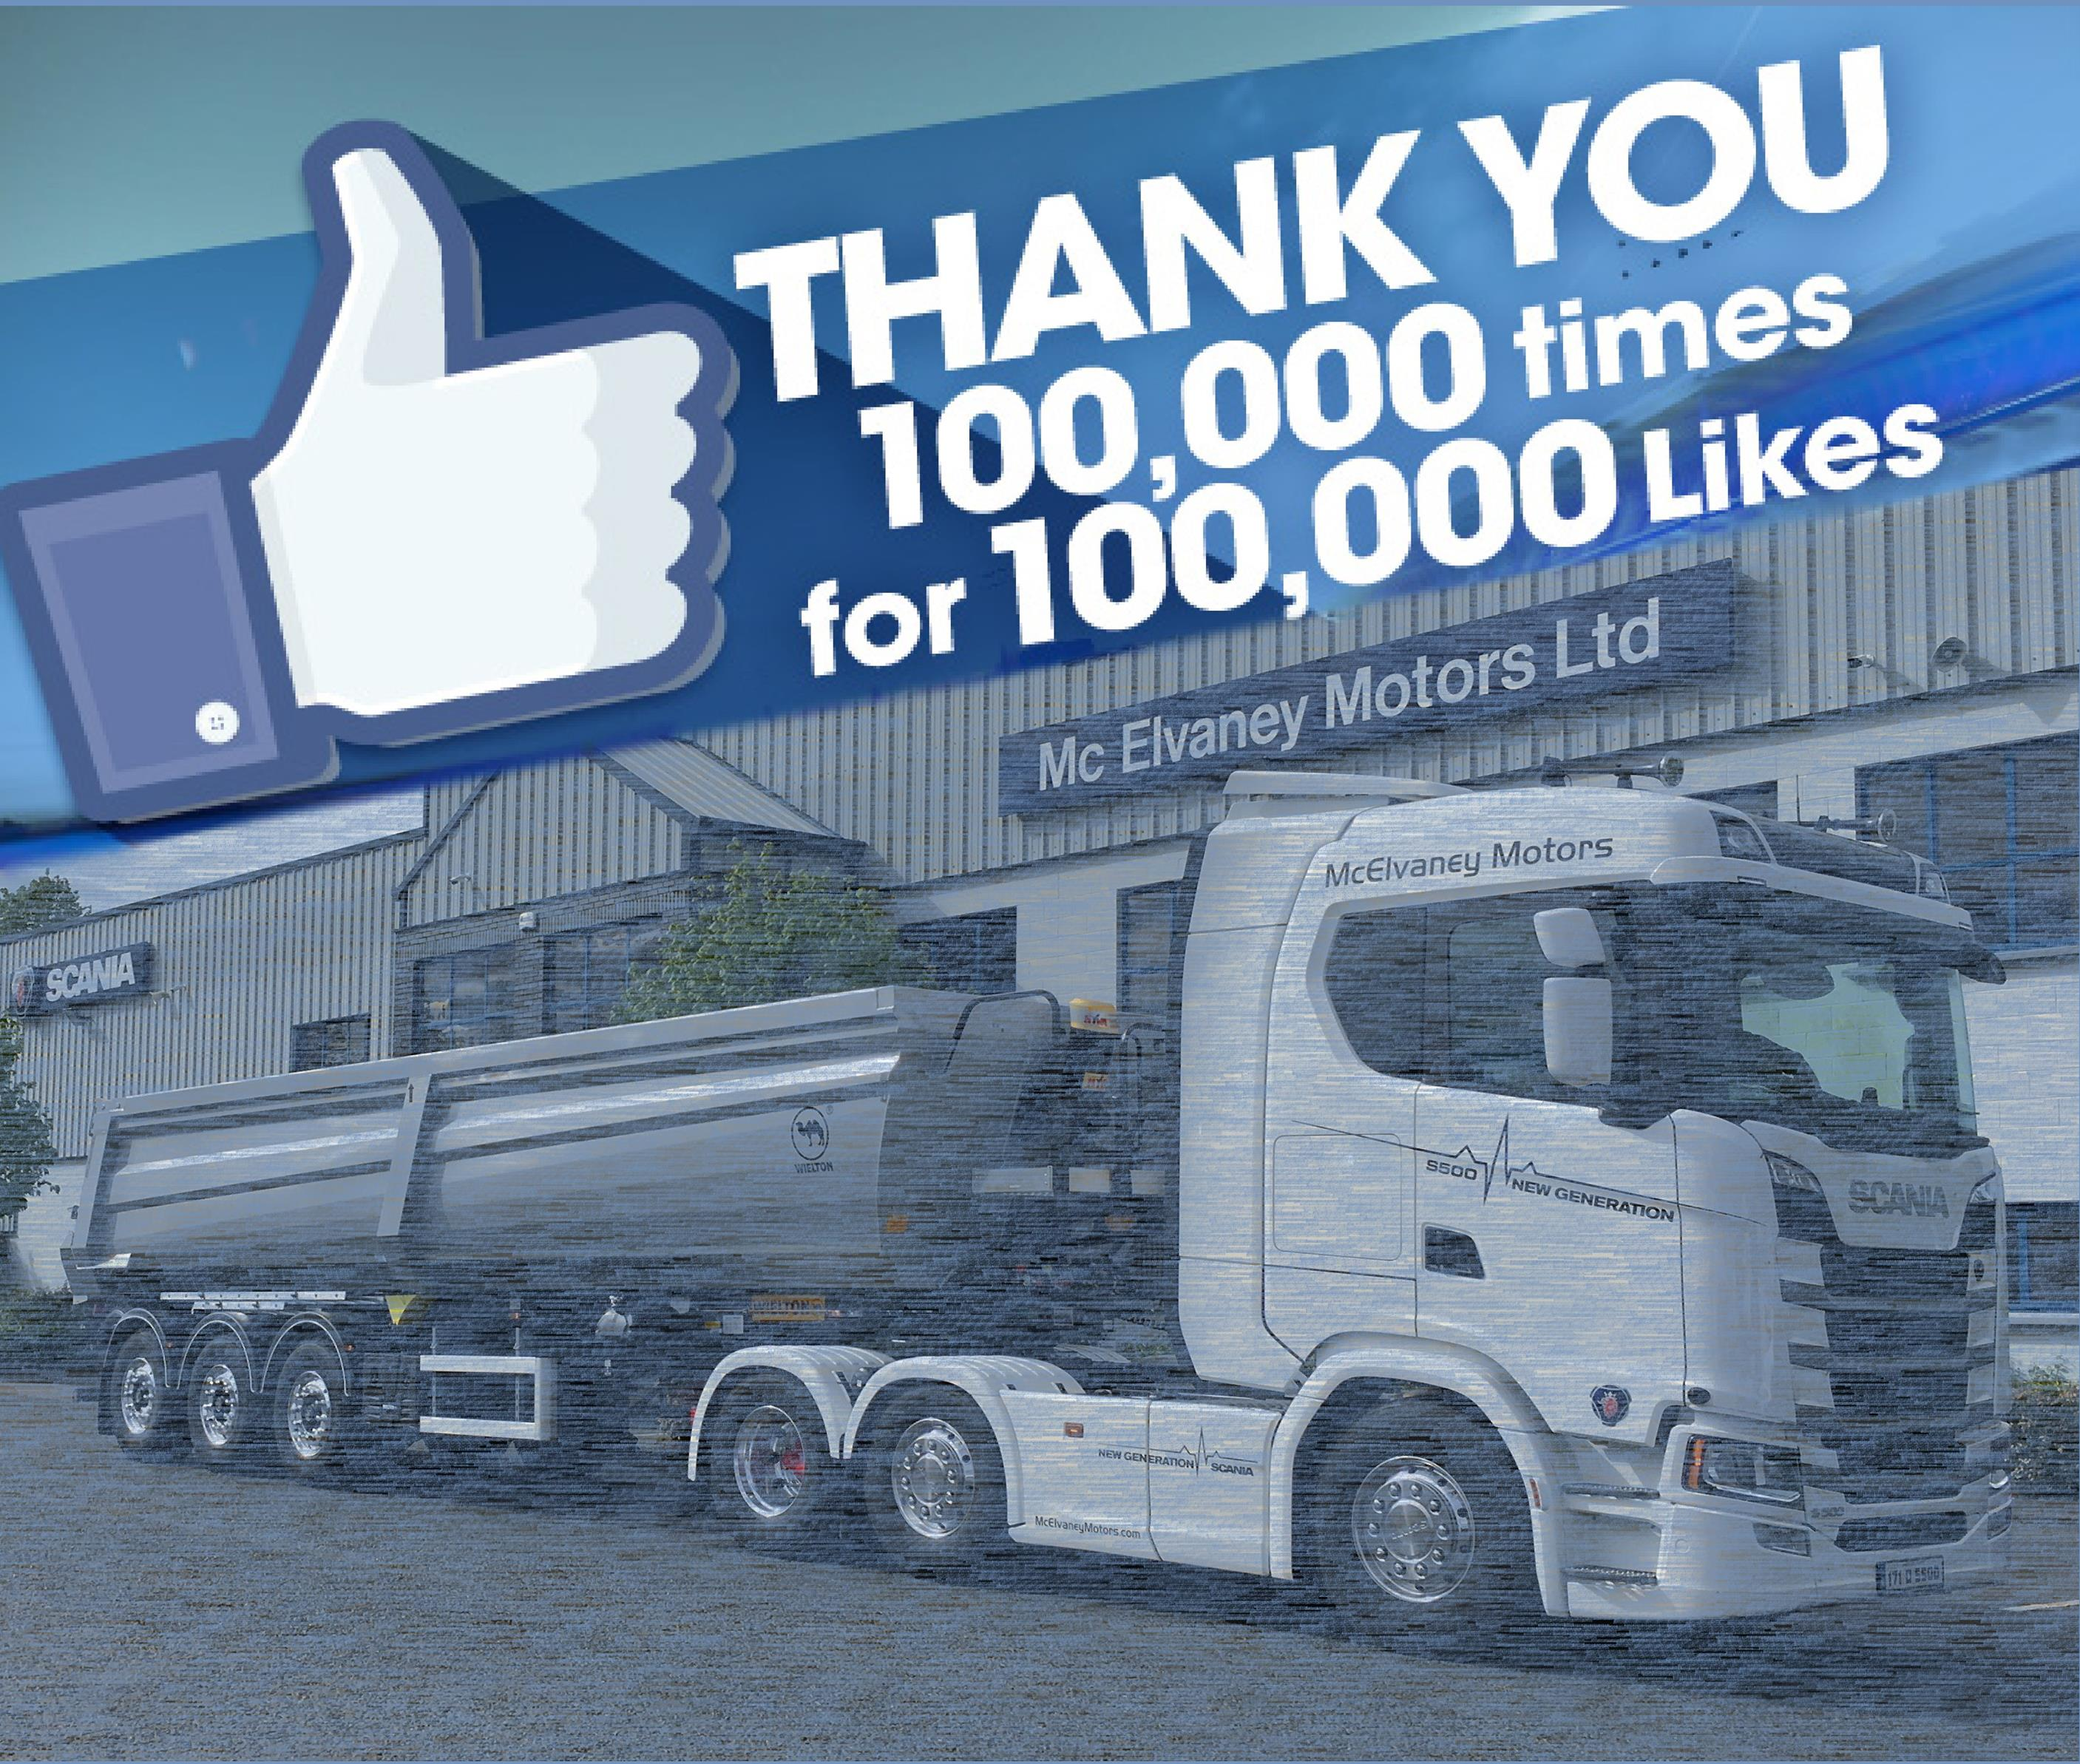 McElvaney Motors Reaches a Milestone on Facebook